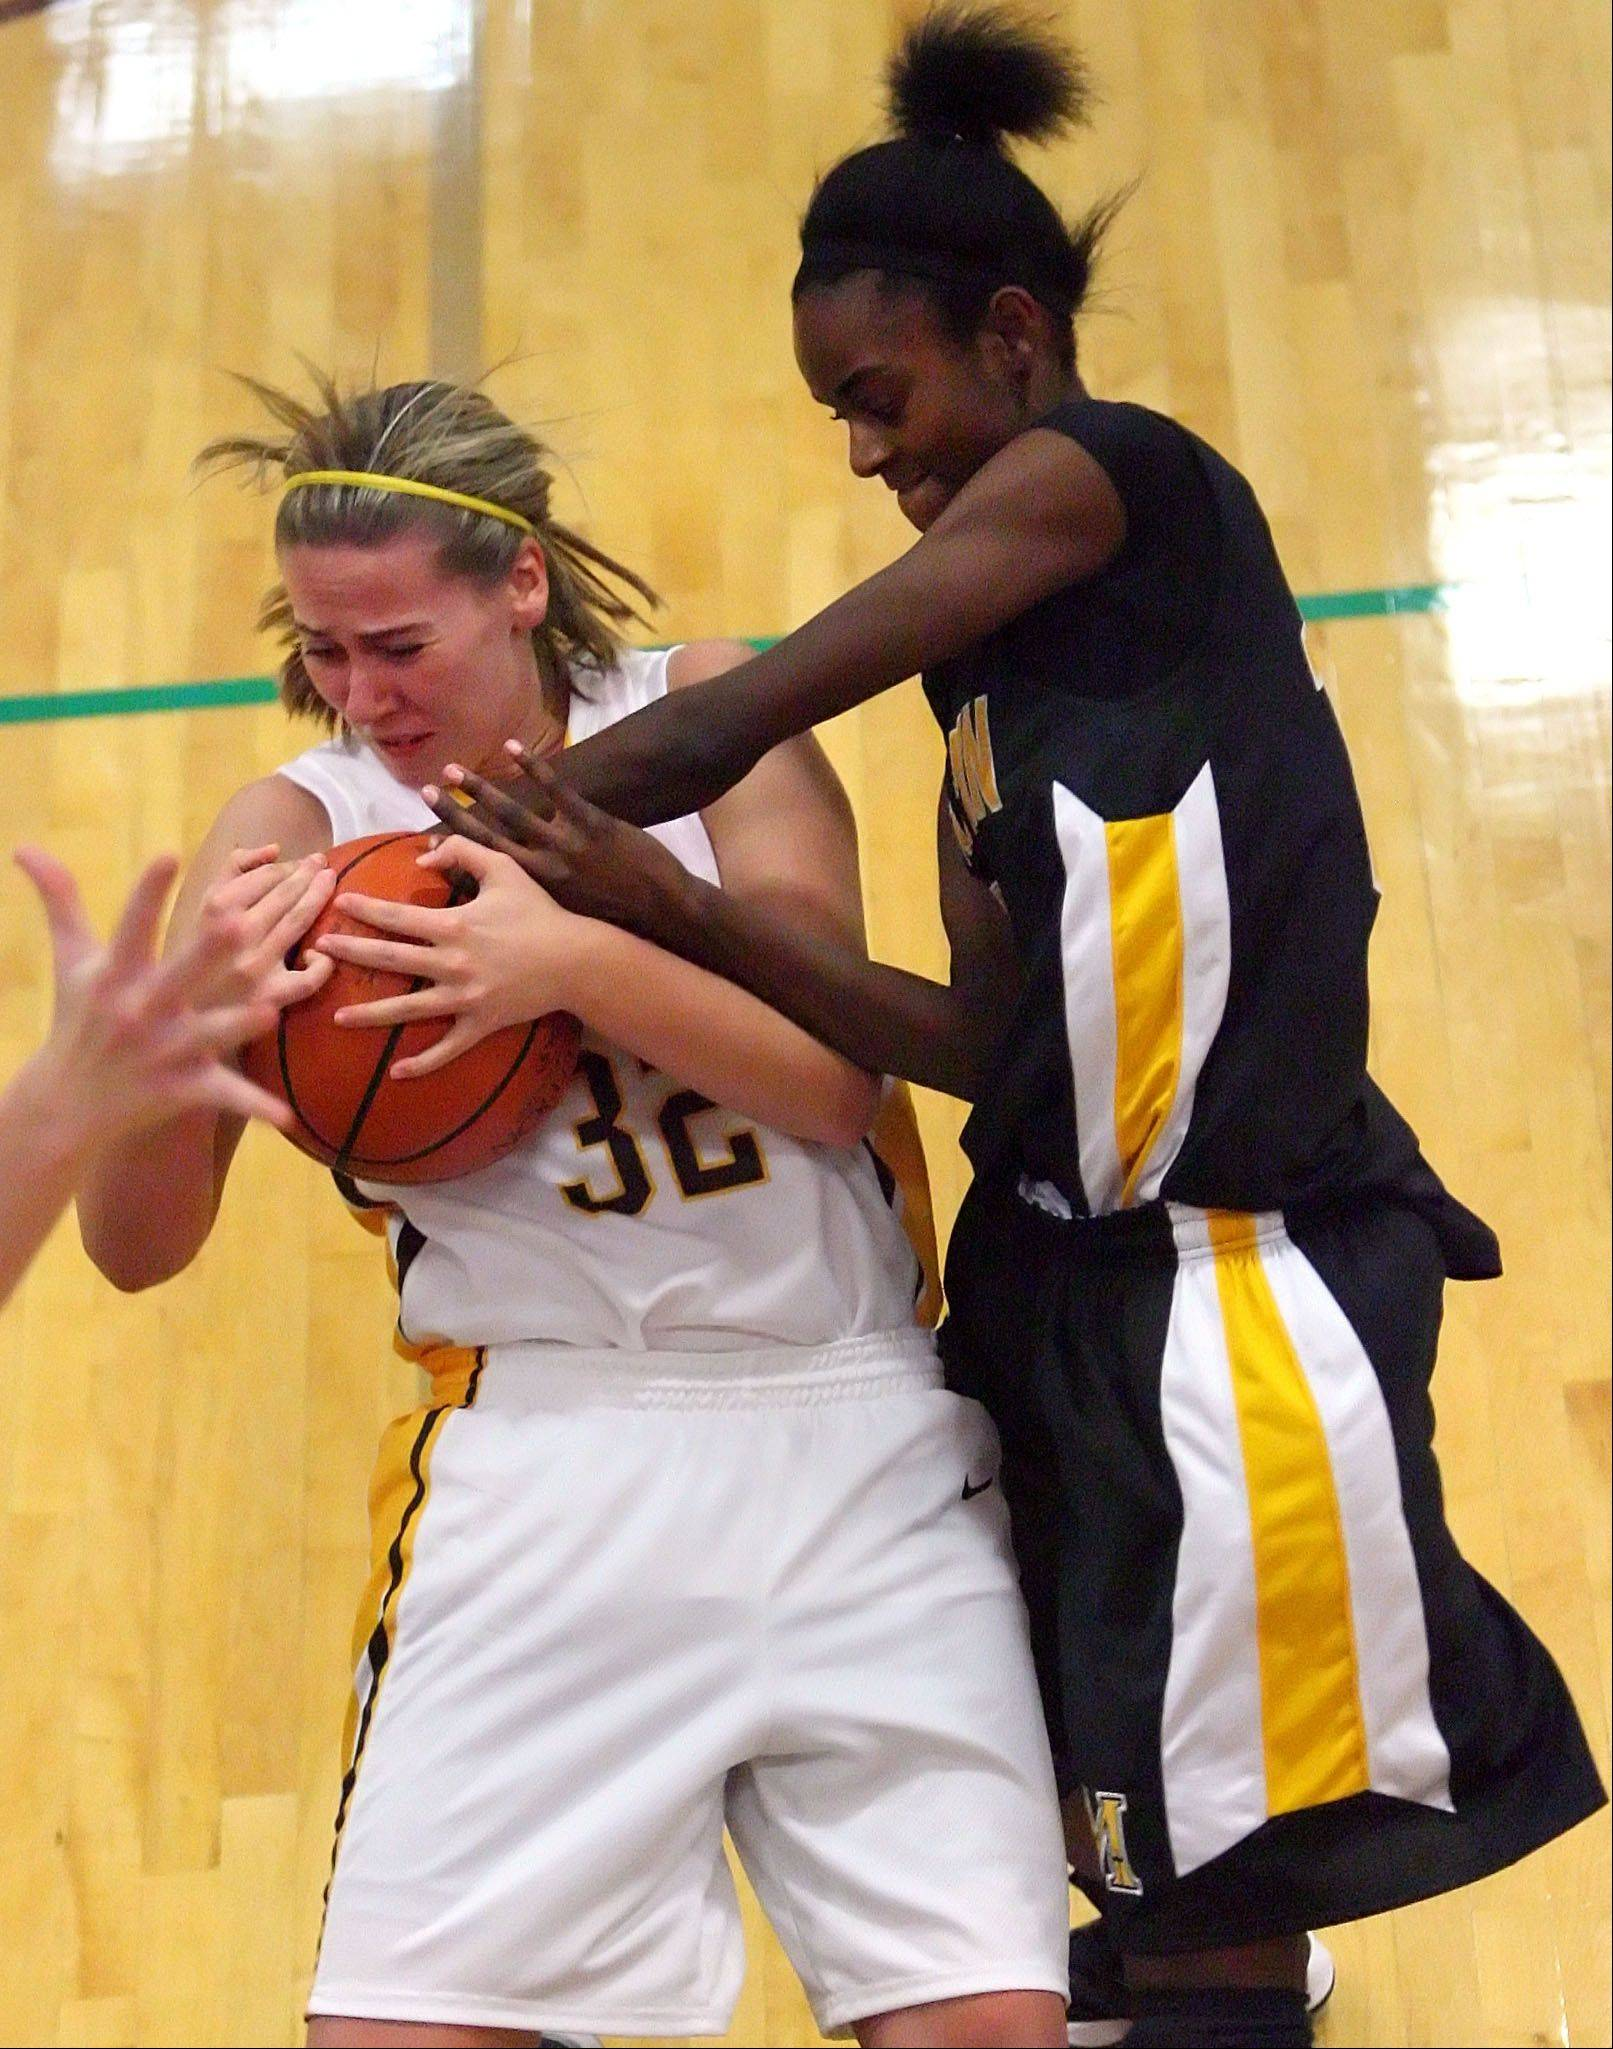 Carmel Catholic's Emma Rappe, left, battles for a rebound with Marian Catholic's Kauai Bradley .